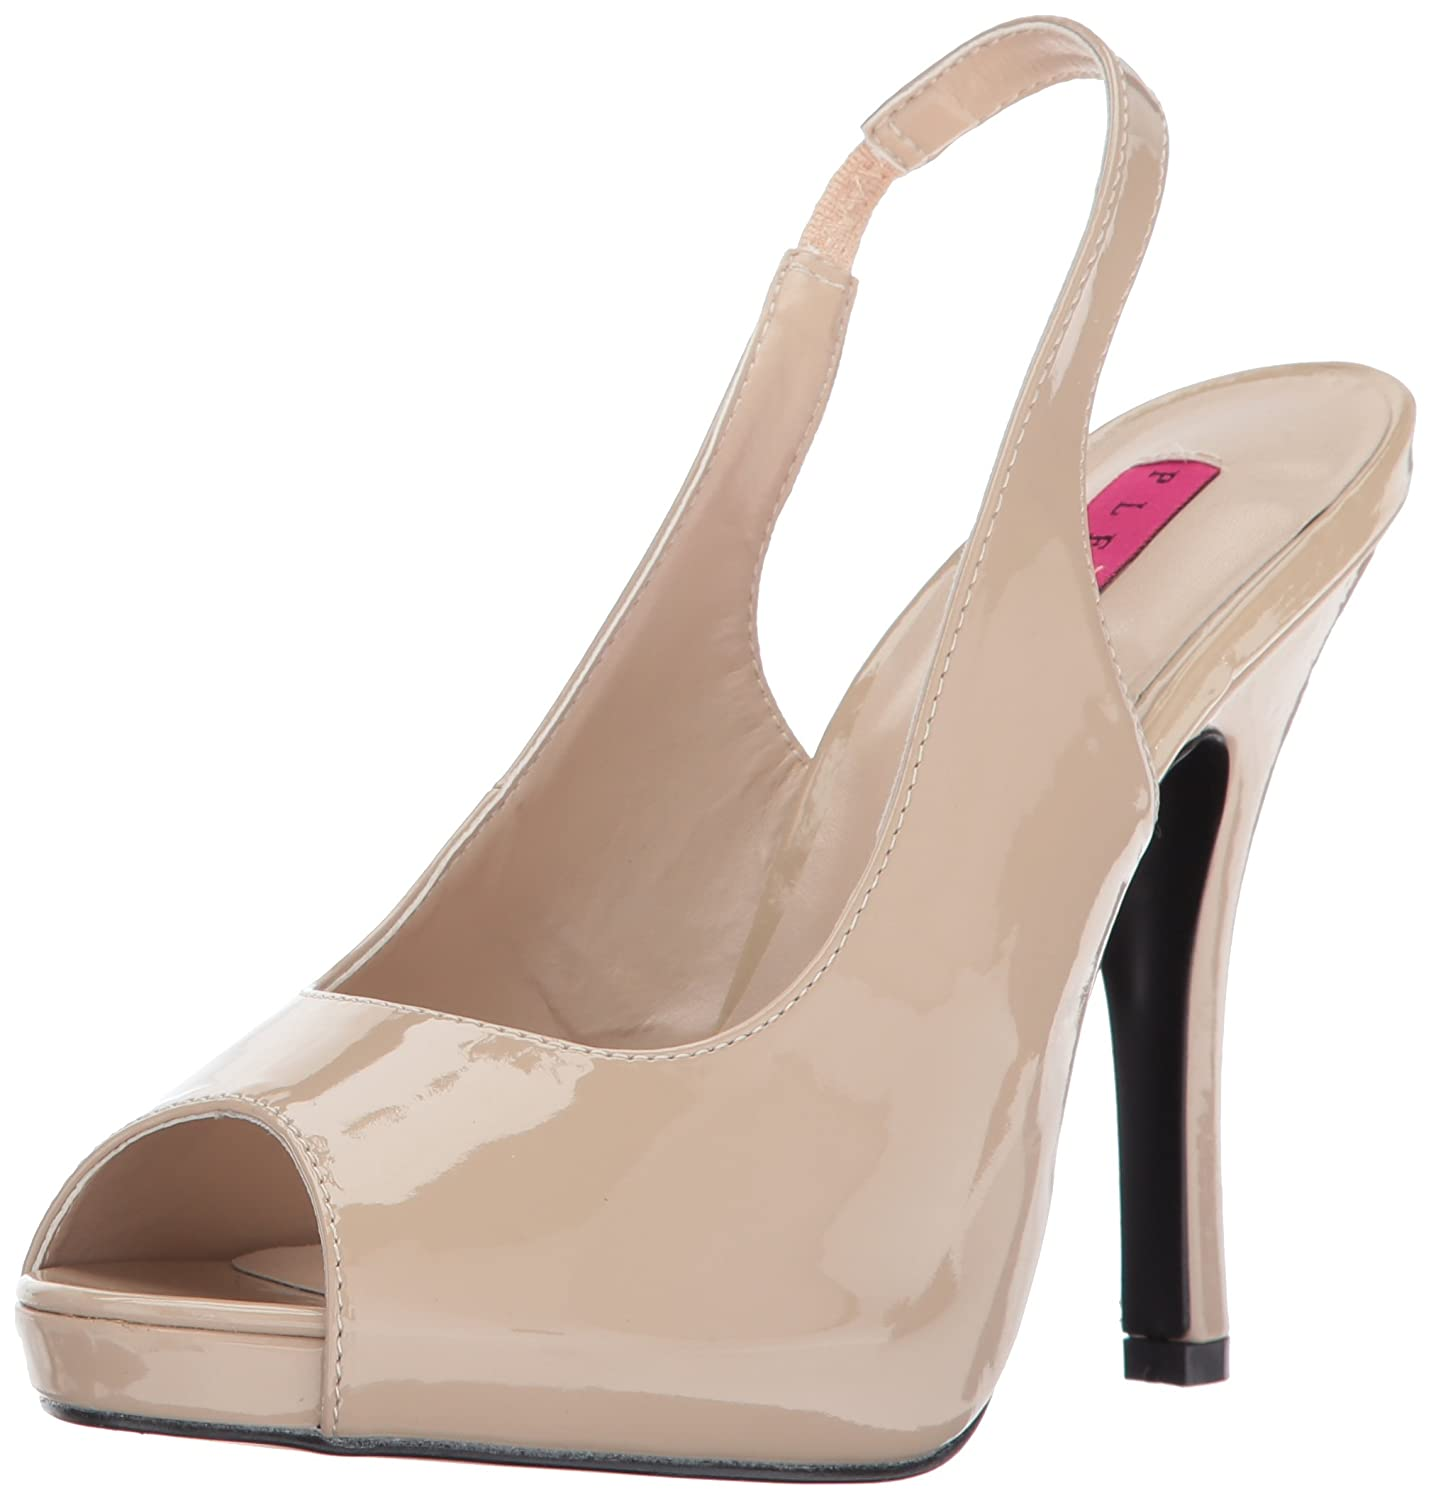 Pleaser Women's Eve04/Cr Platform Dress Sandal B06XGLFQ1X 15 B(M) US|Cream Patent